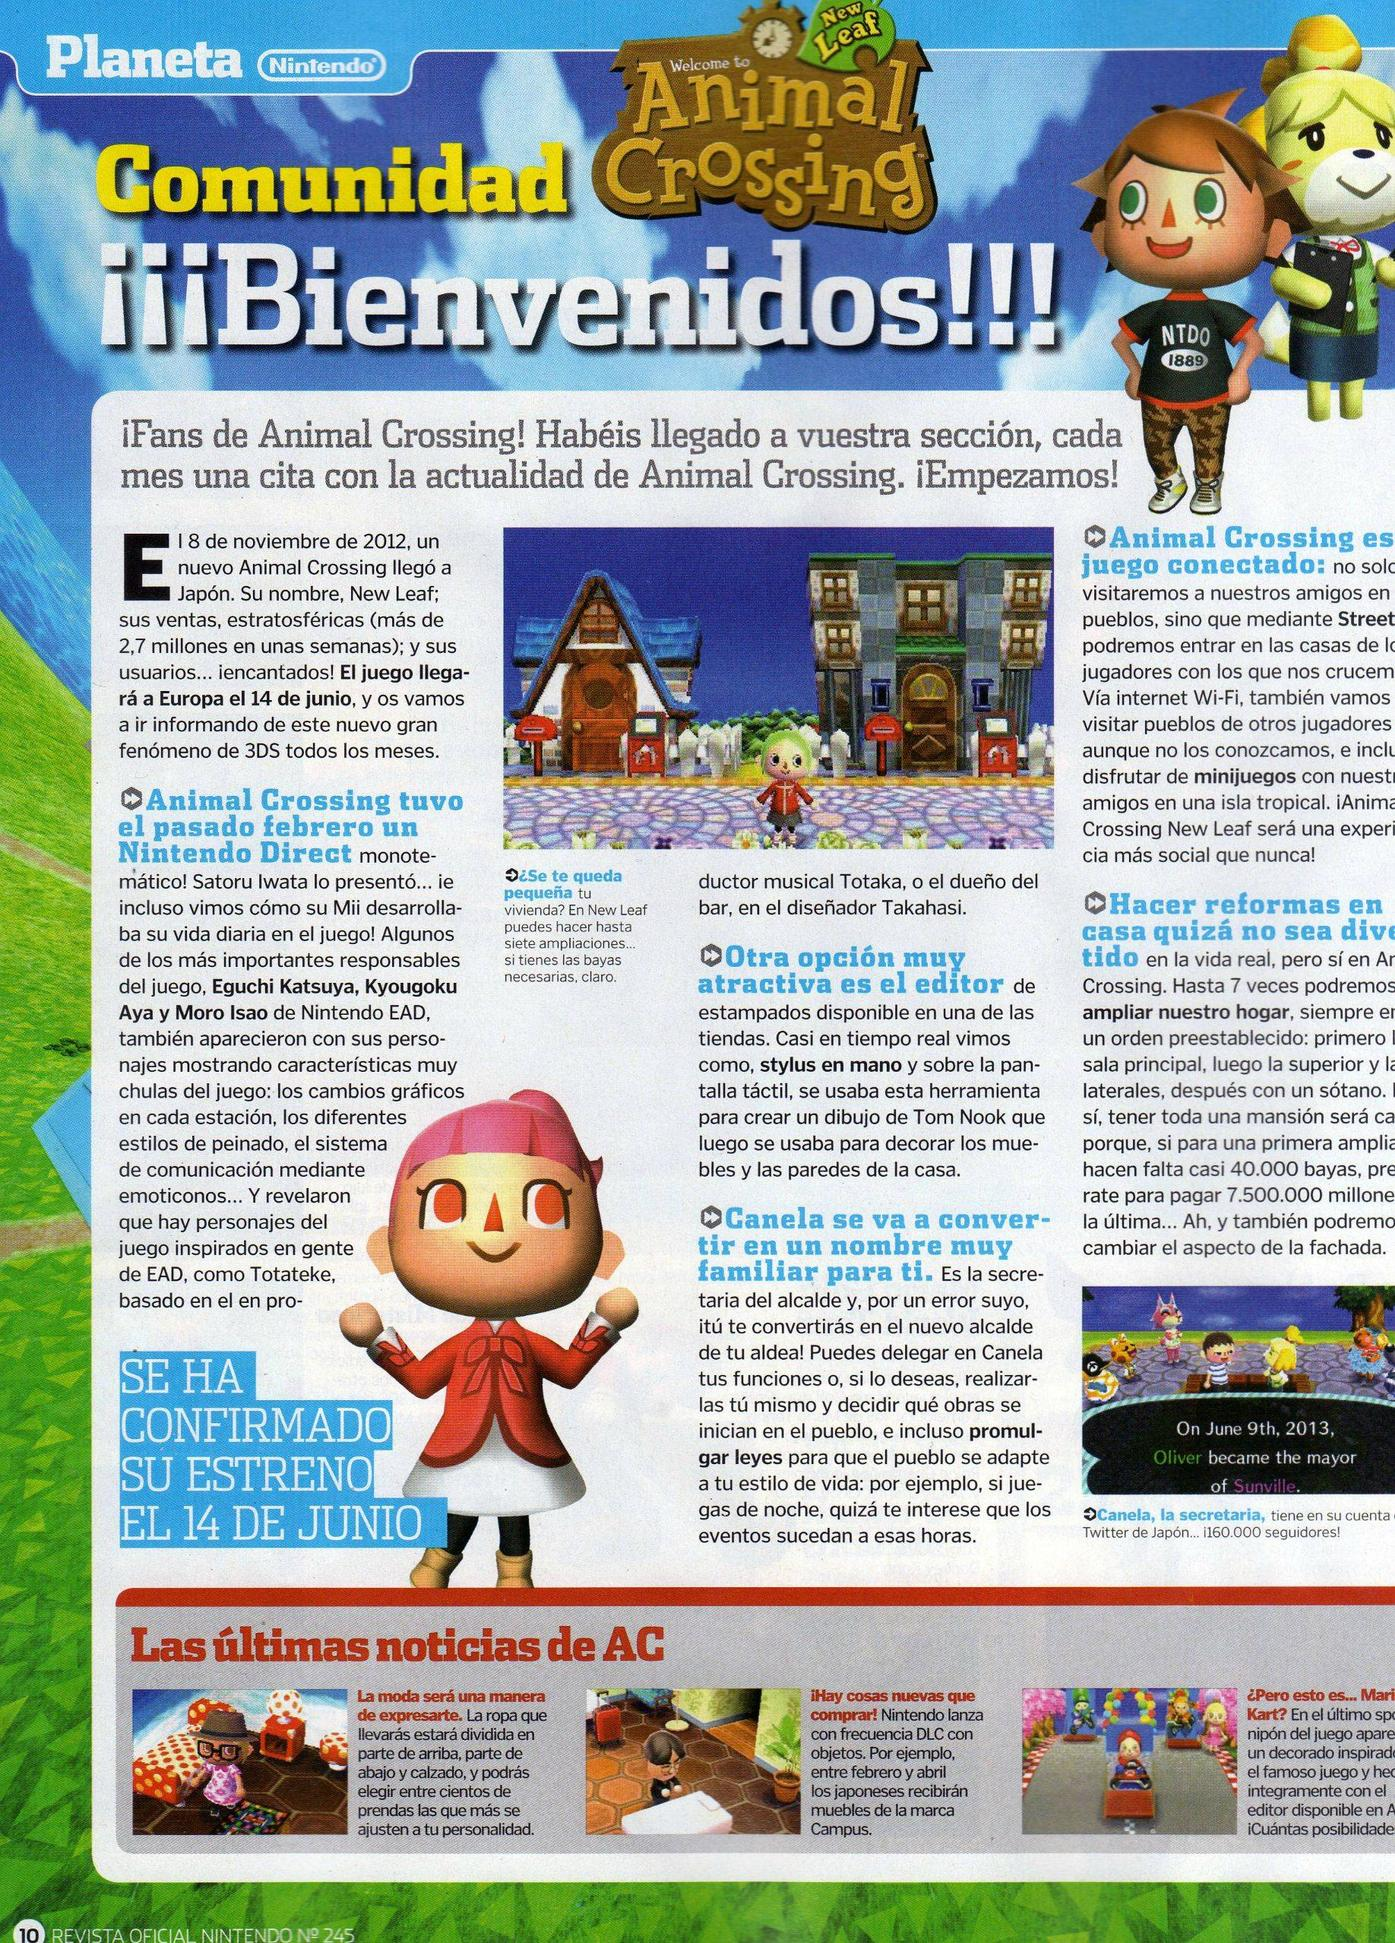 La revista Nintendo desvelará novedades de Animal Crossing 3DS: New Leaf  cada mes